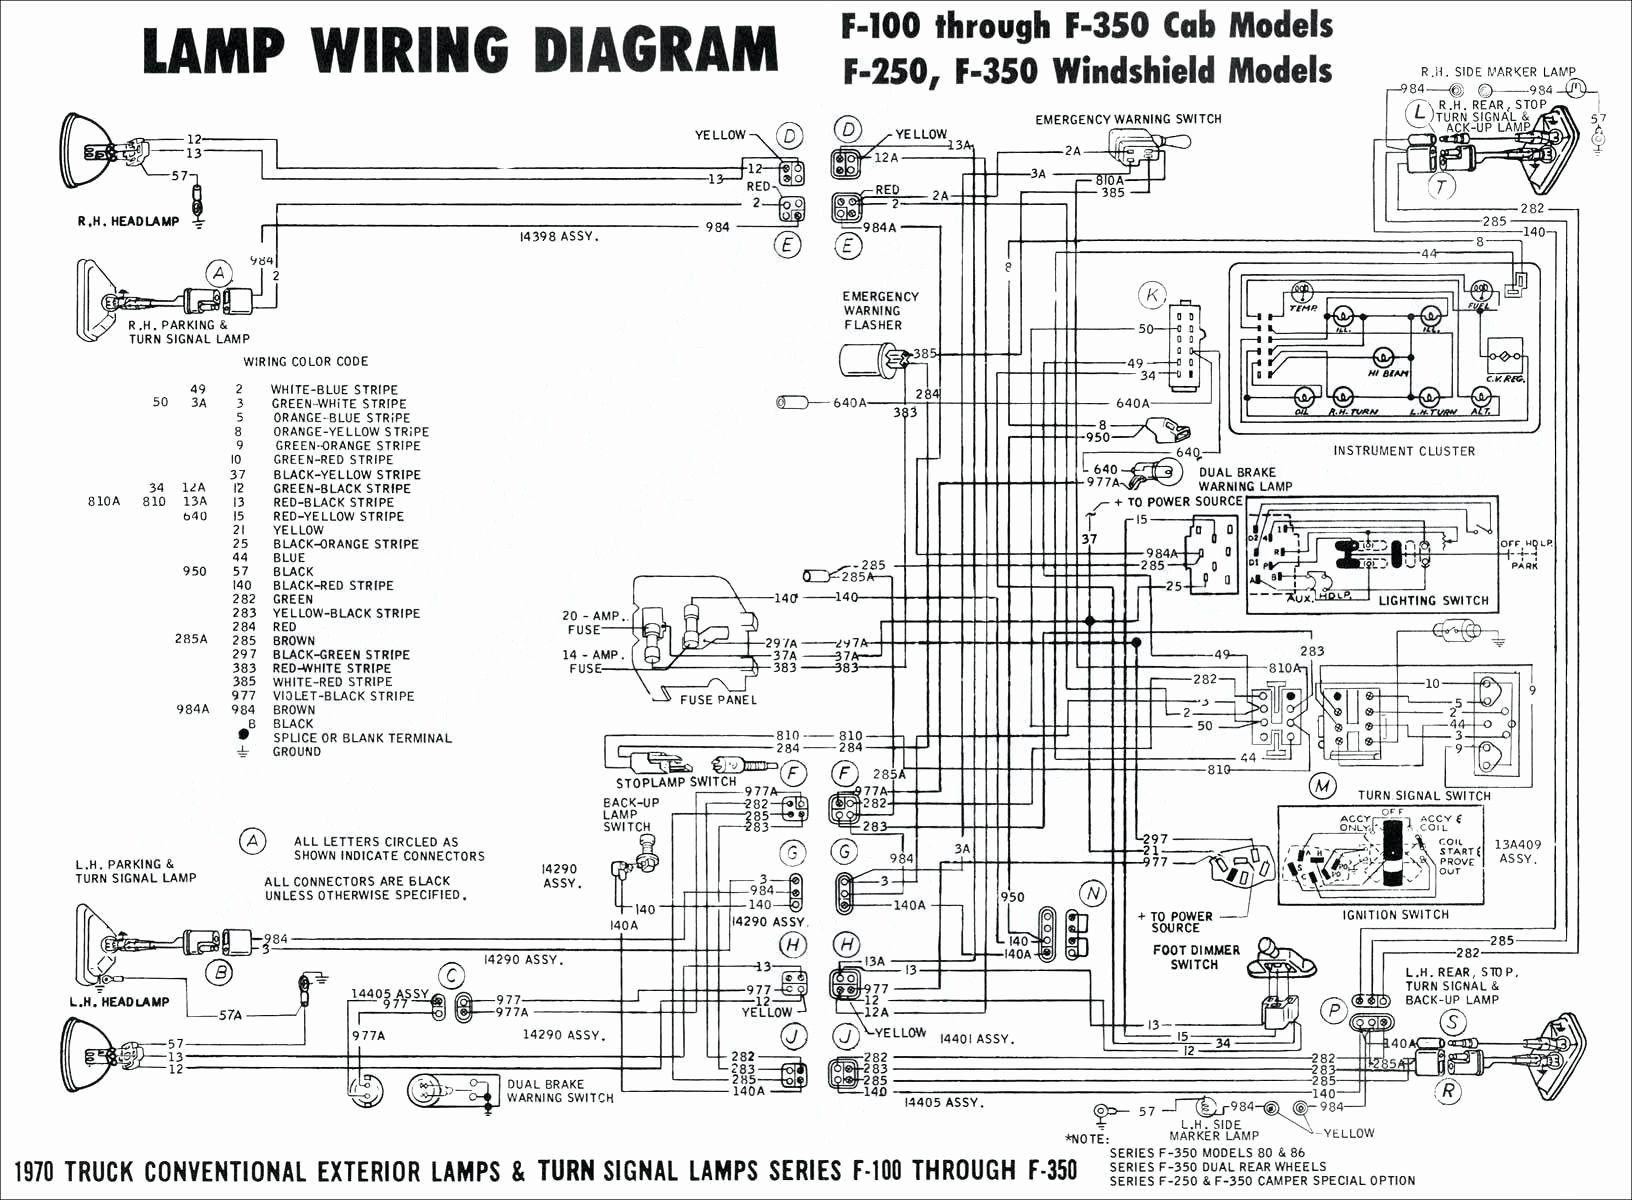 Awesome 2000 S10 Headlight Wiring Diagram in 2020 | Electrical wiring  diagram, Trailer wiring diagram, Diagram | Wiring Diagram For 2002 Chevy S10 |  | Pinterest